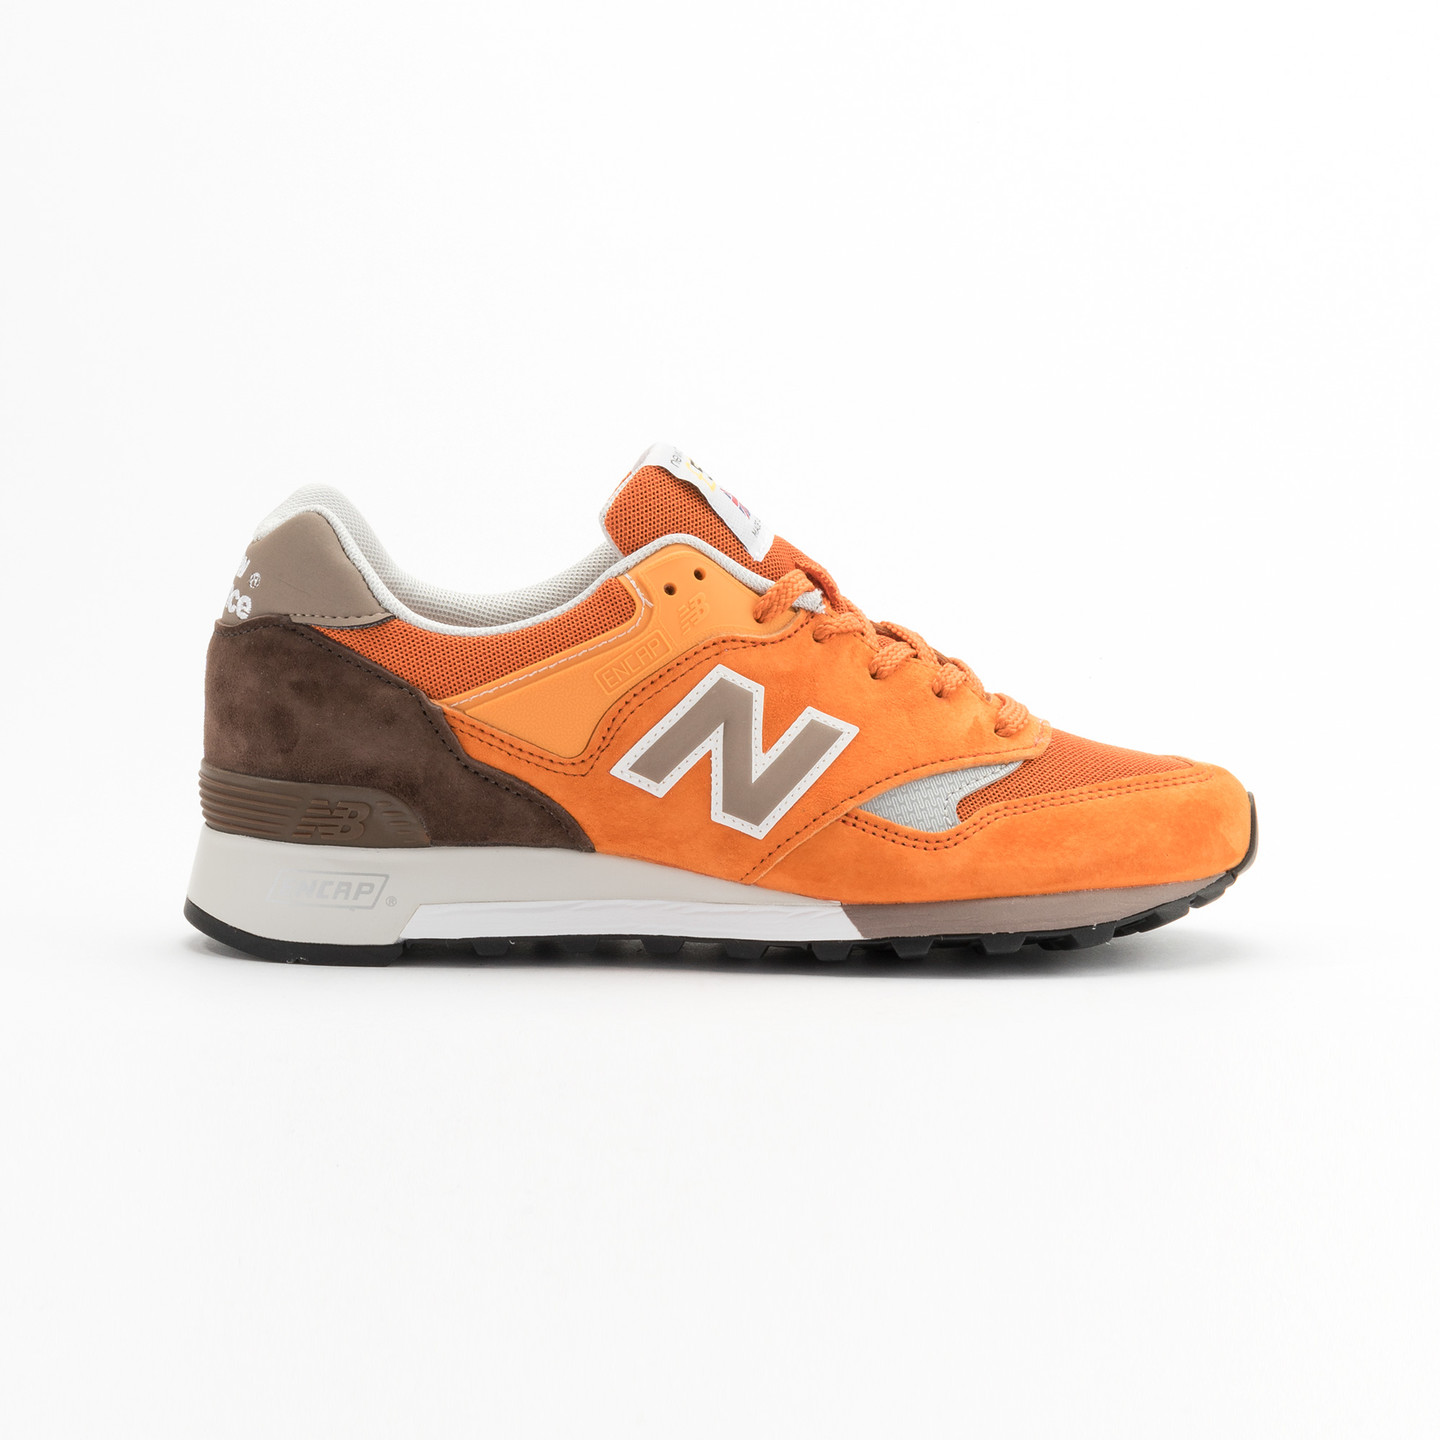 New Balance M577 ETO - Made in England Orange / Brown M577ETO-42